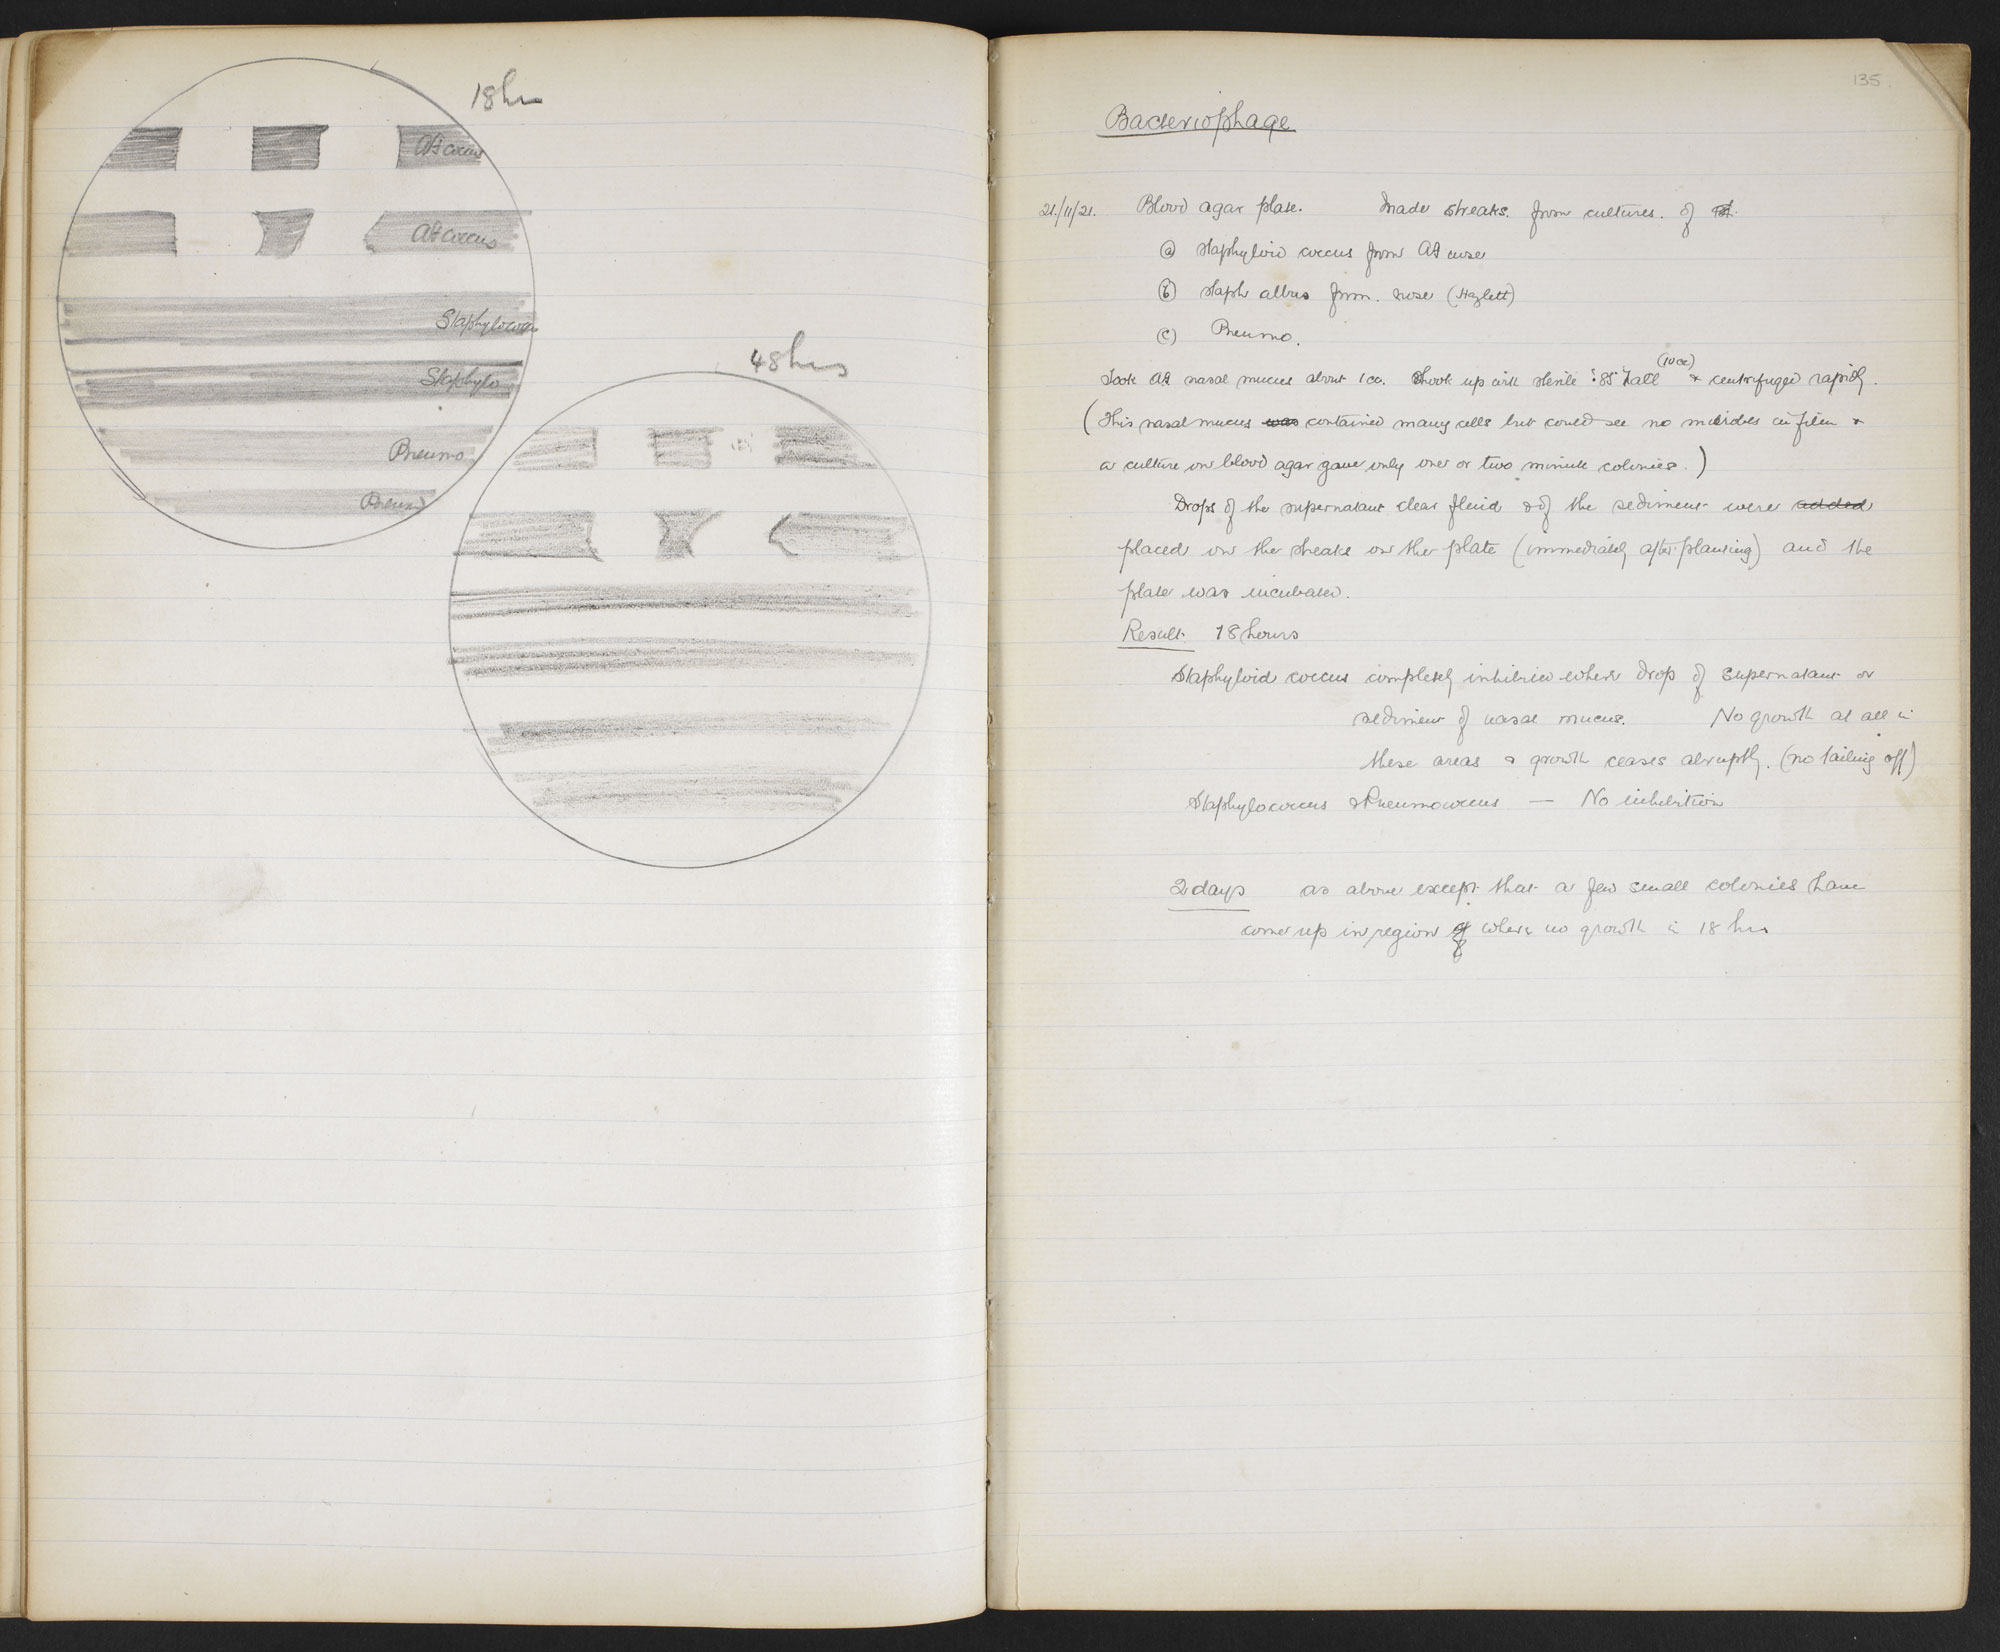 Sir Alexander Fleming's Lab Books